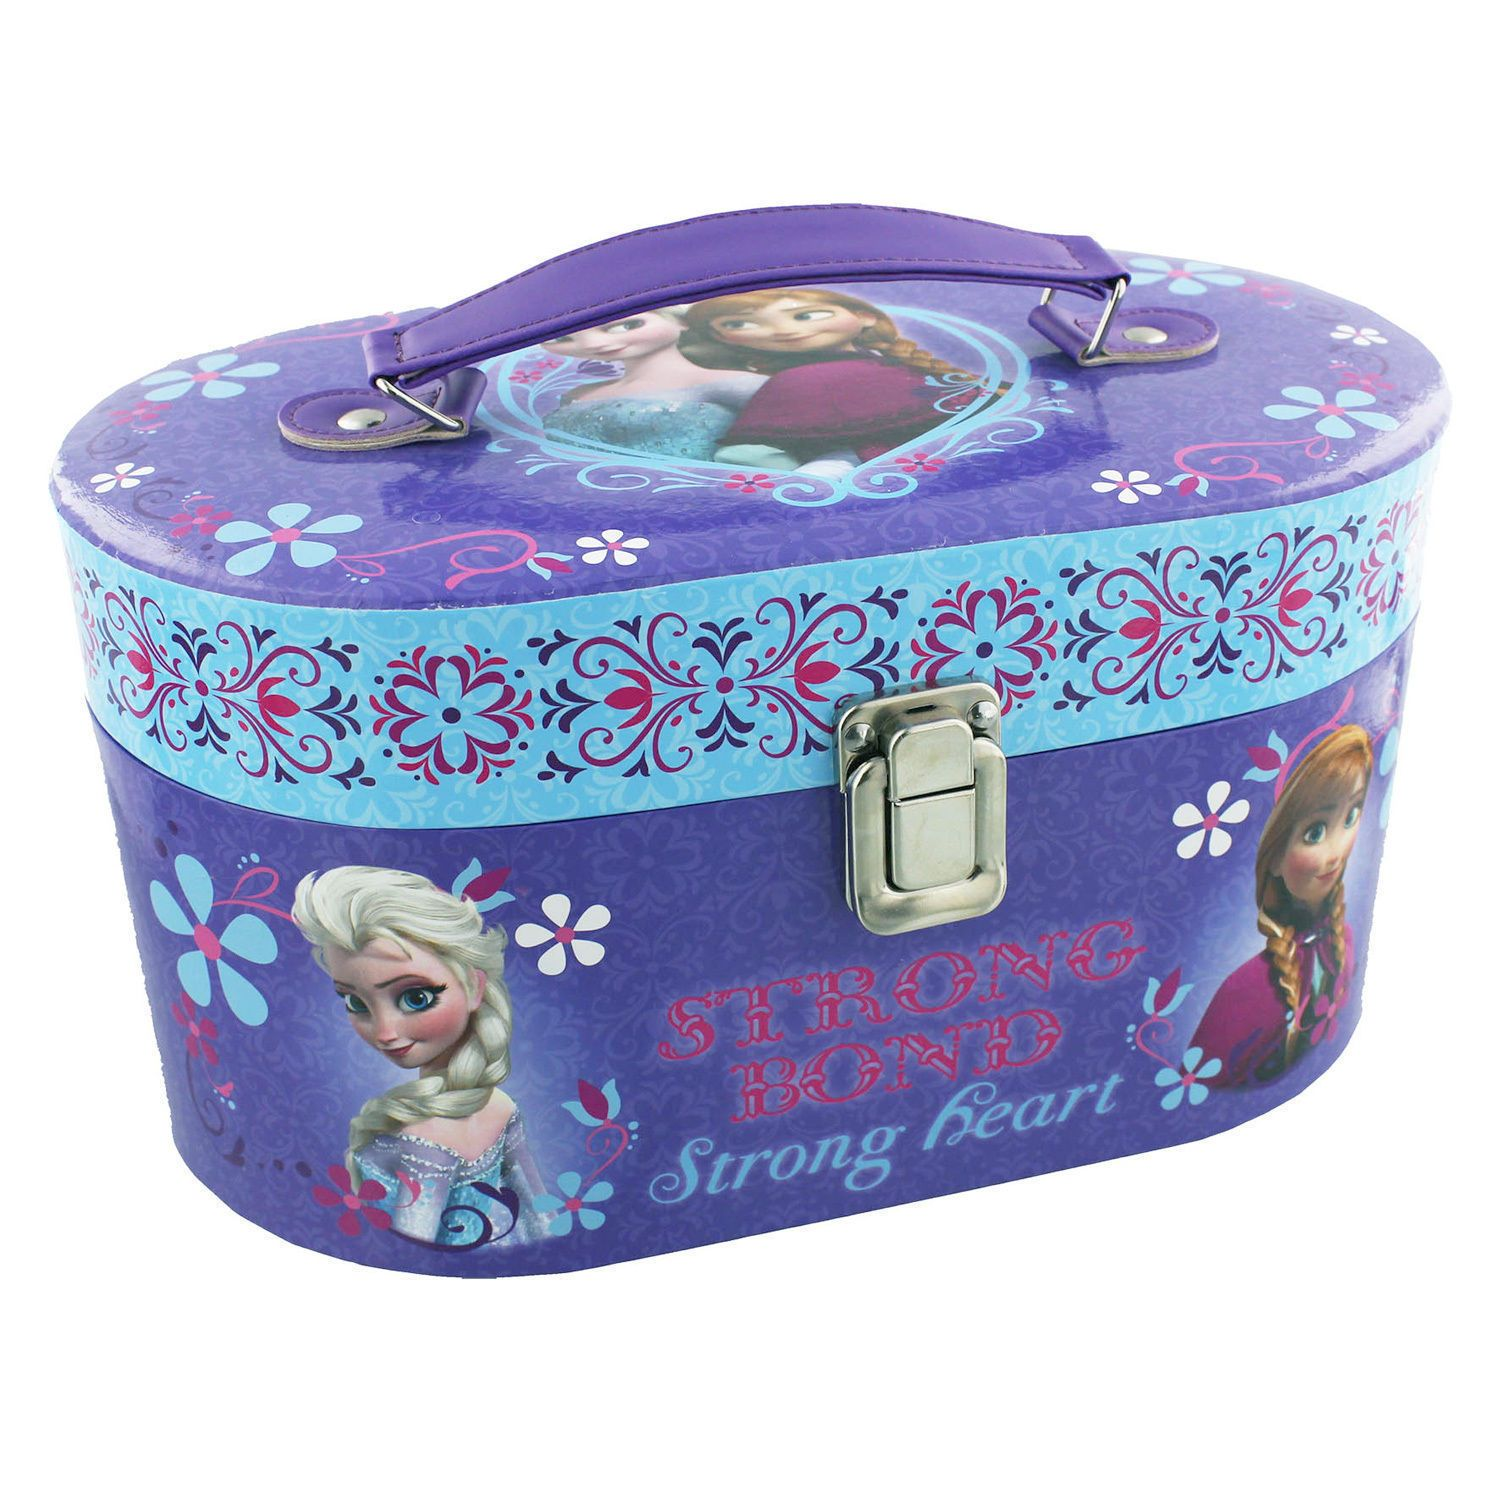 Disney Frozen Toy Boxes Set Of 3 Trunks Bedroom Decor Accessories